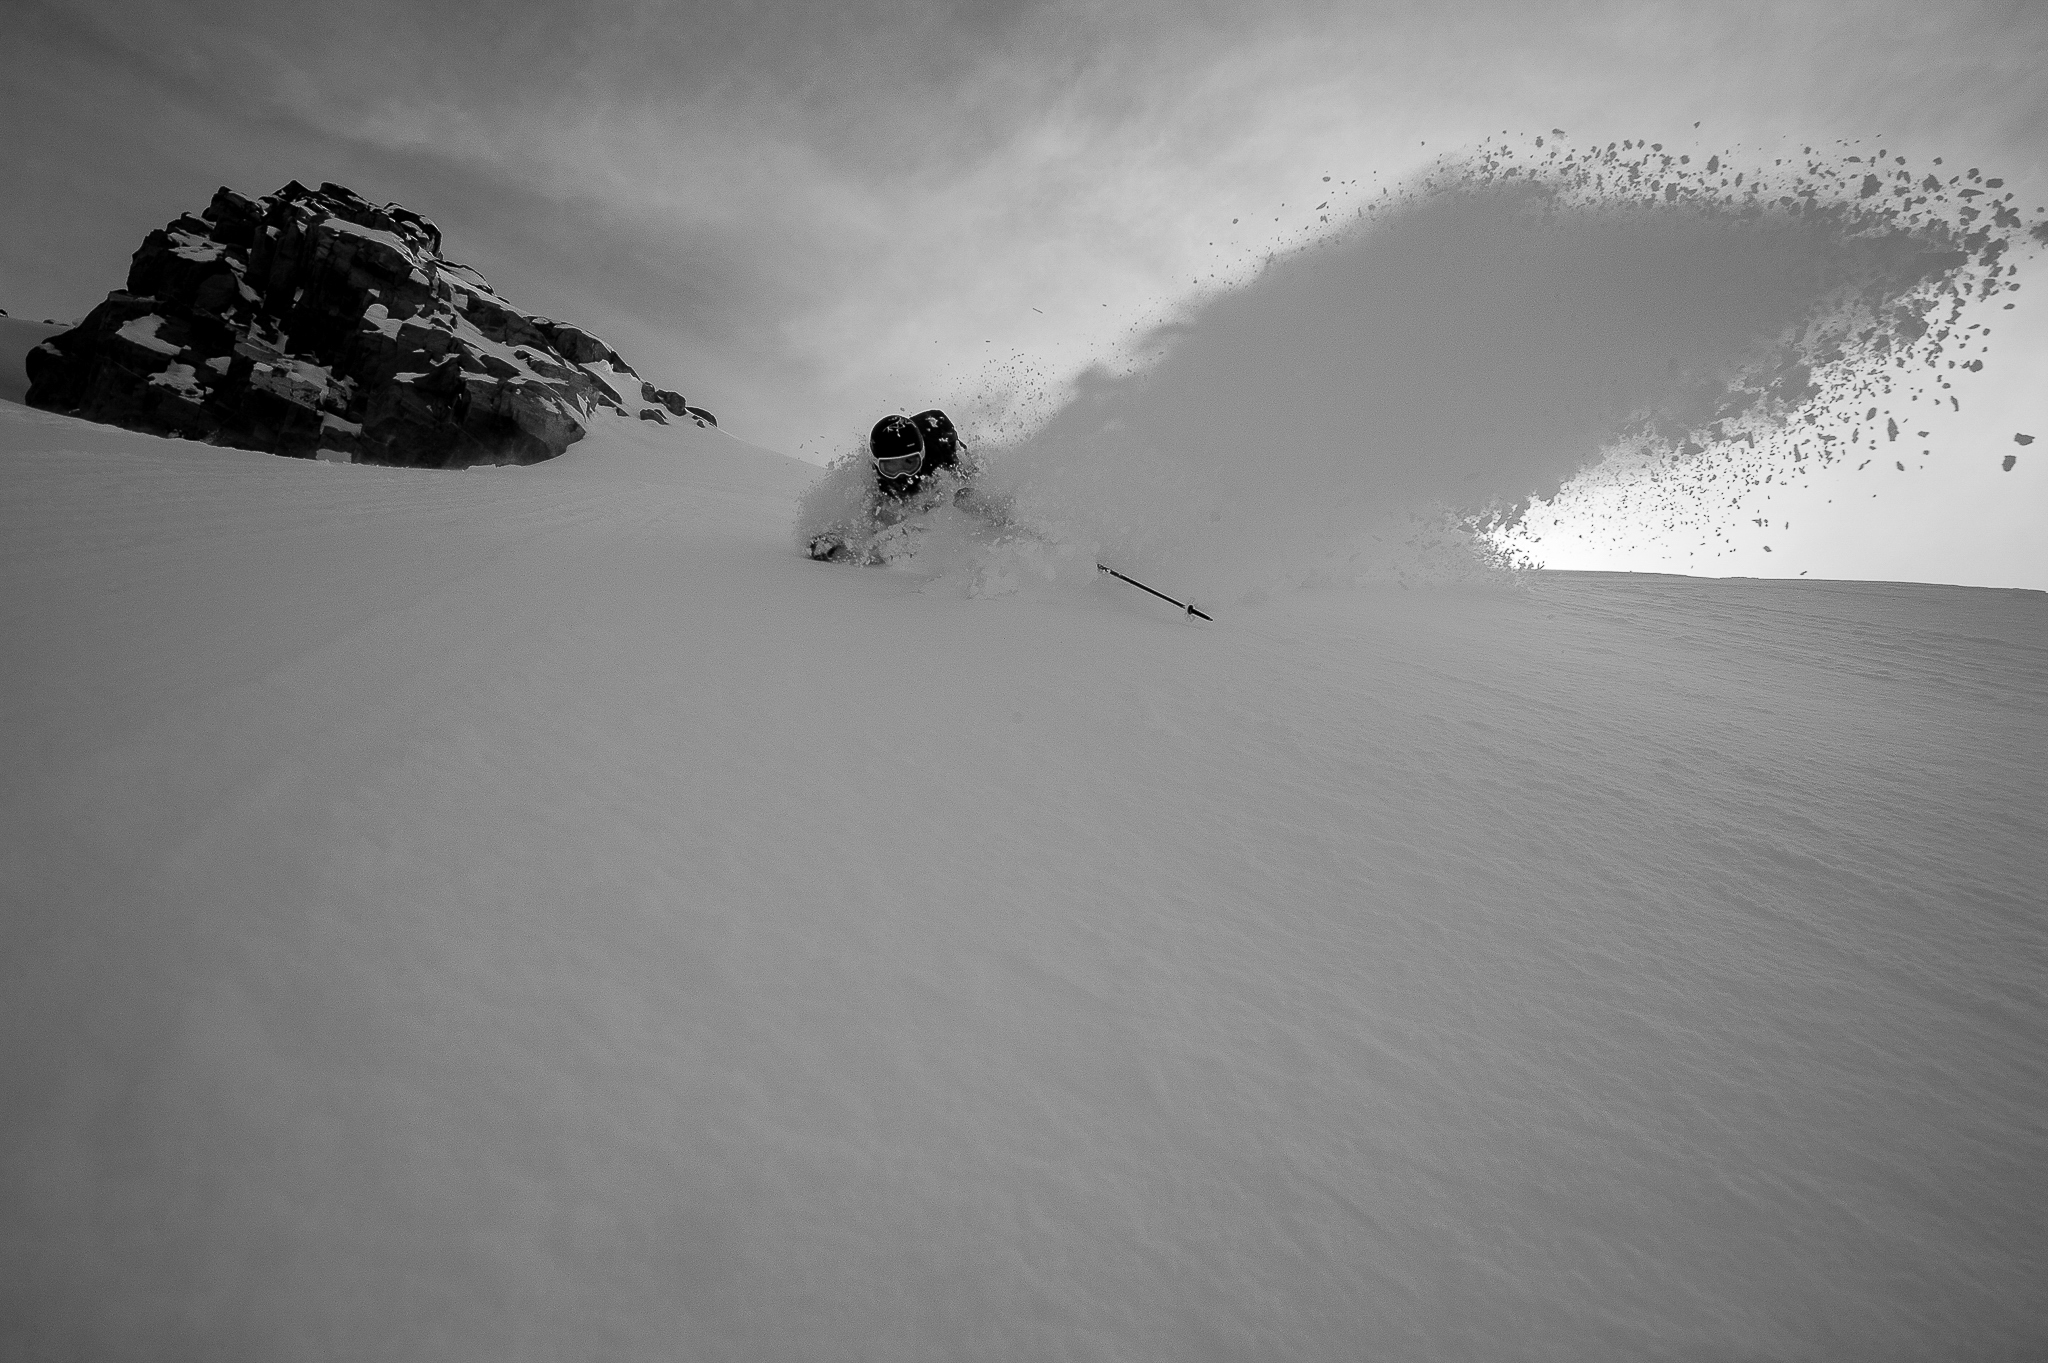 Skier: Austin Ross Location: Duffey Lake, BC